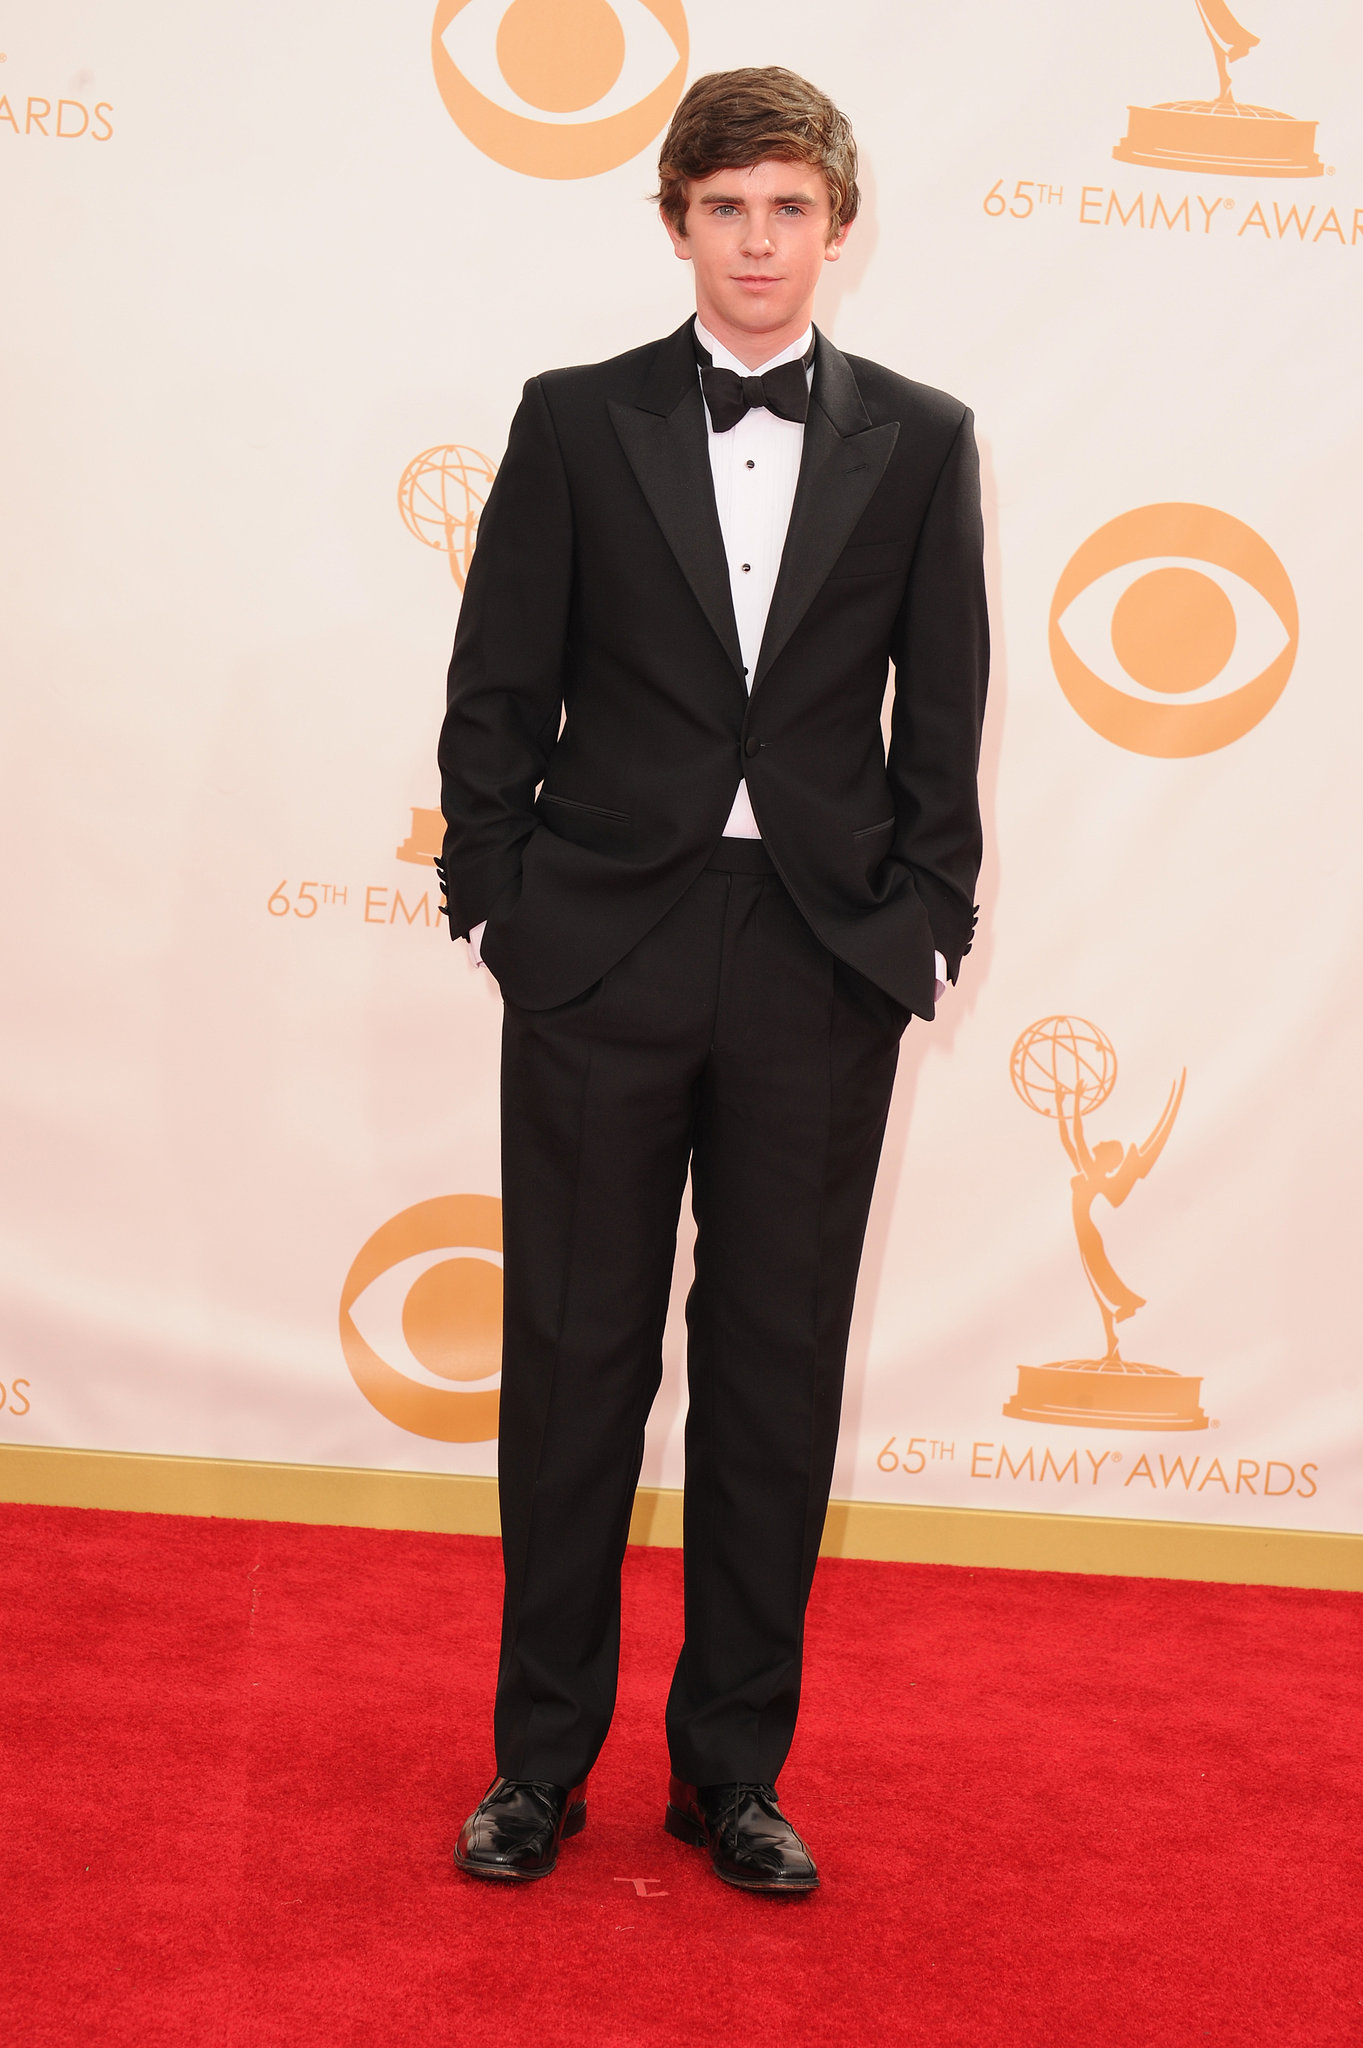 Actor Freddie Highmore suited up for the Emmys.